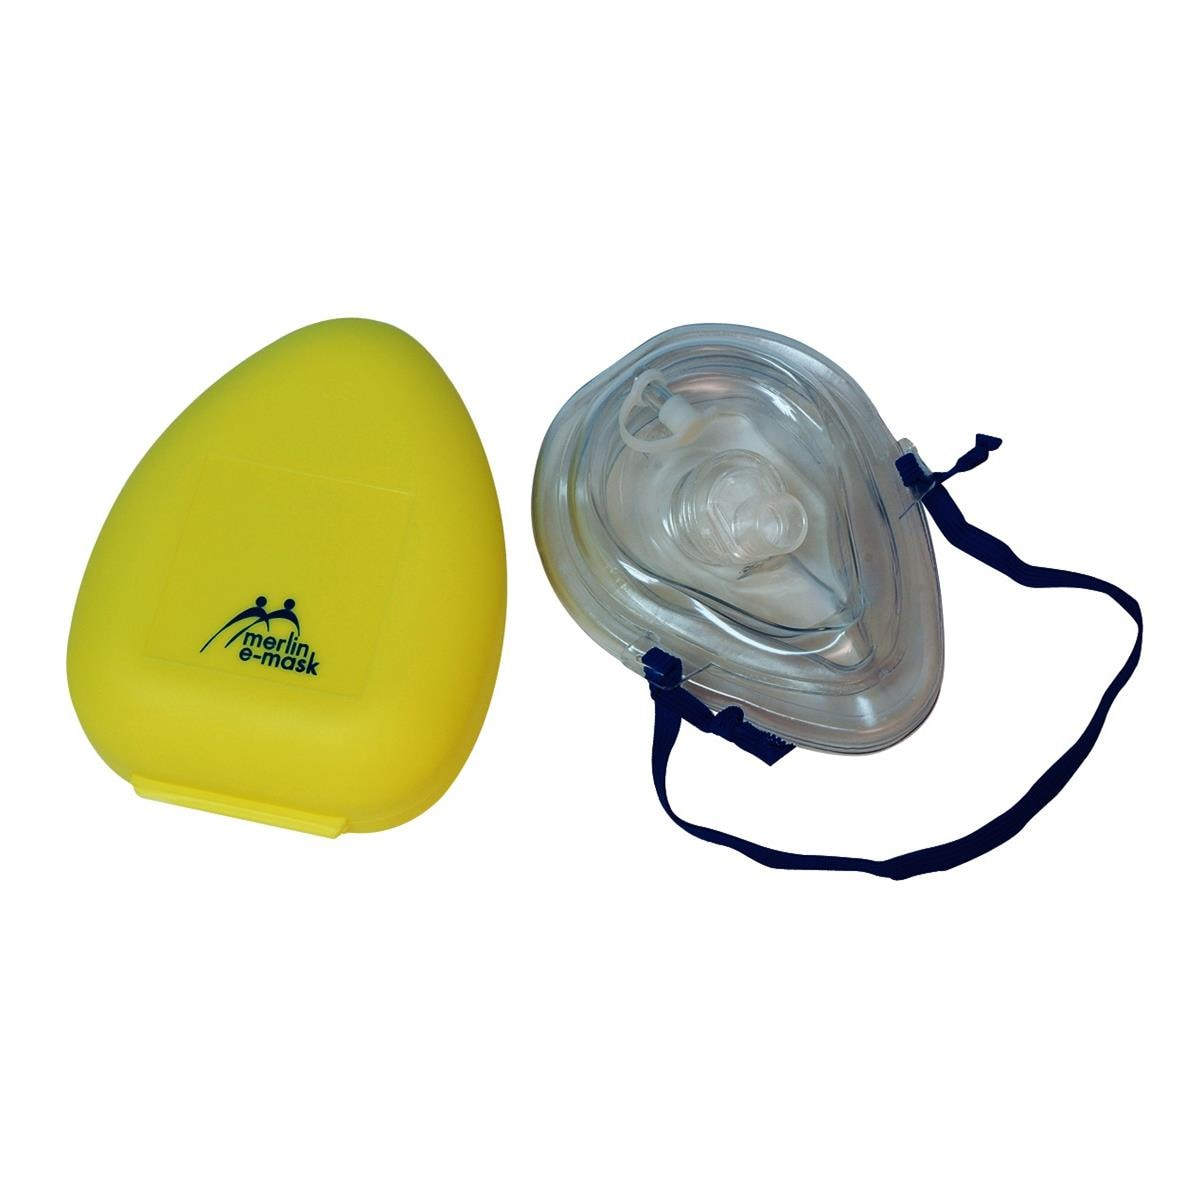 Case With Facemask E-mask Cpr Merlin